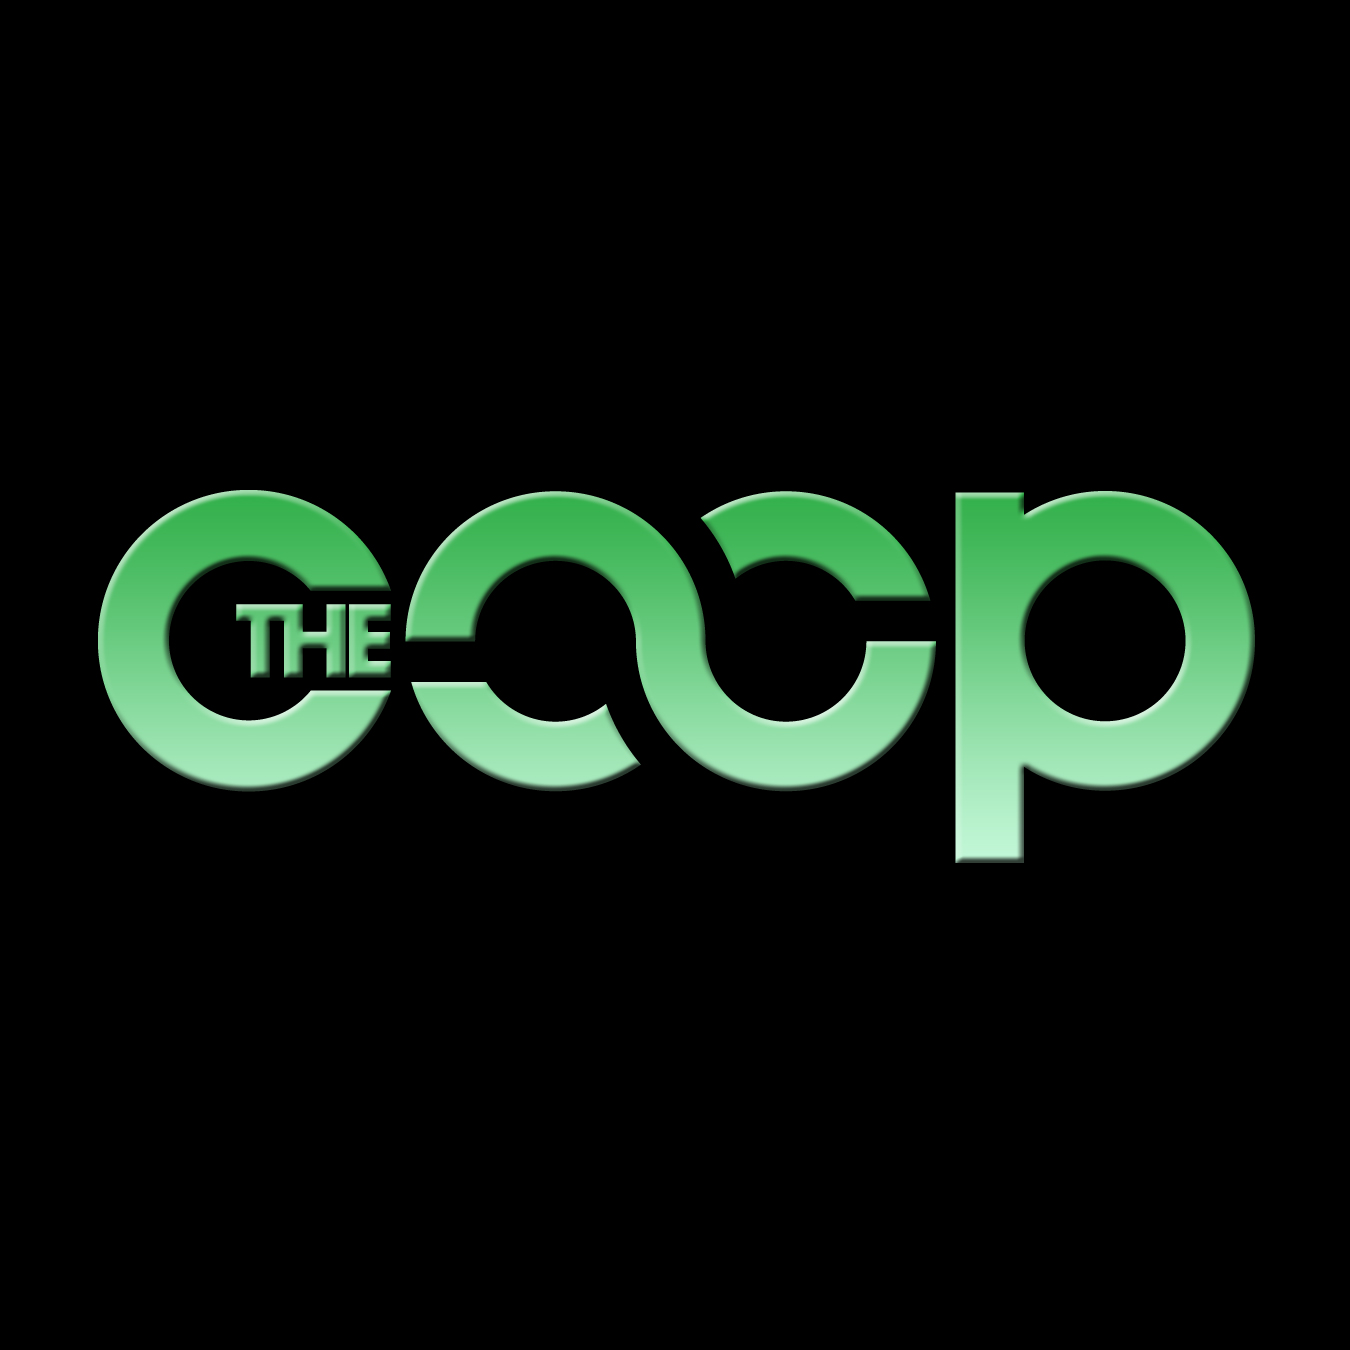 The Coop Profile Link